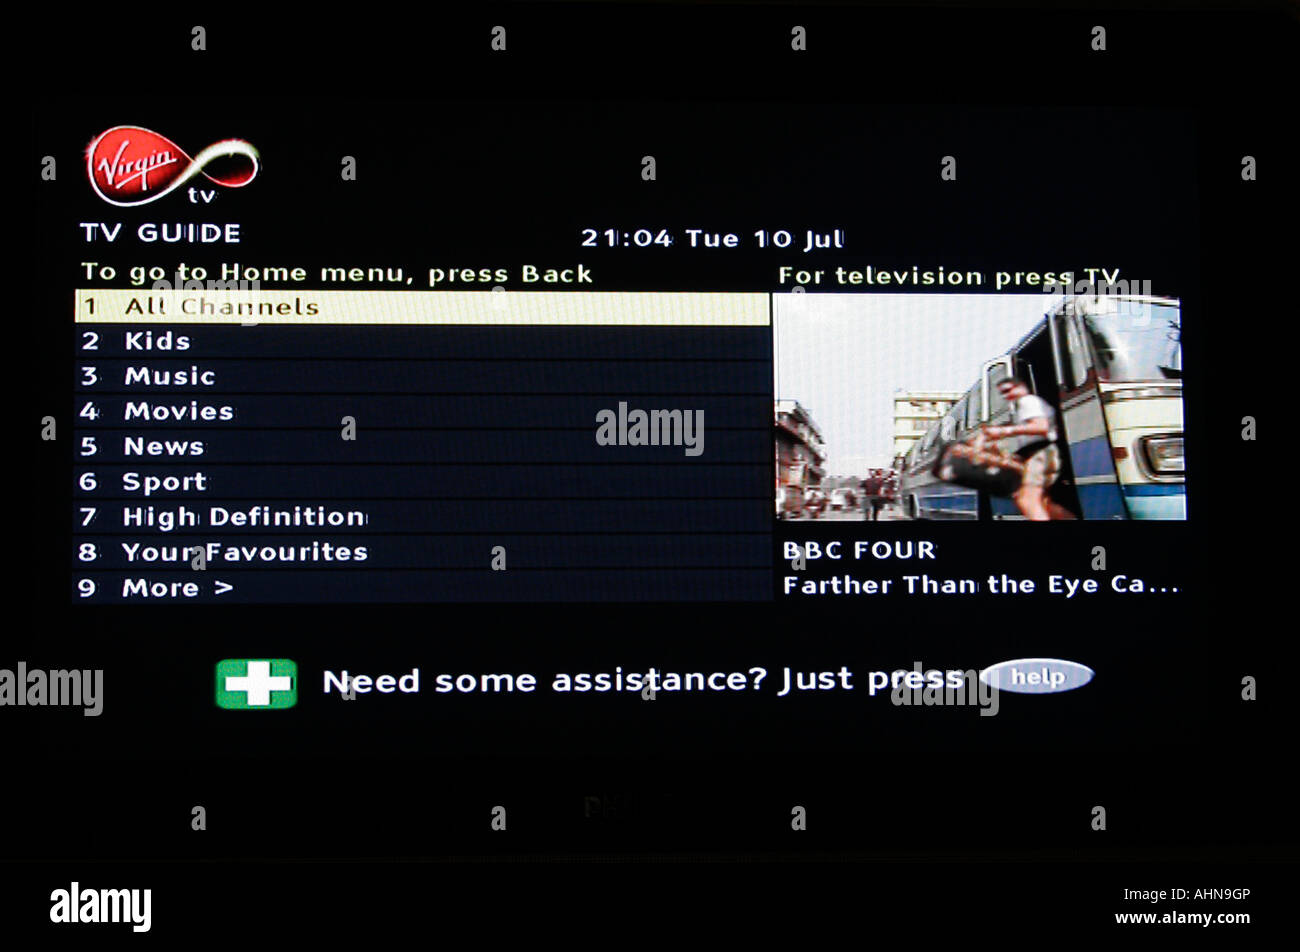 Comcast cable guide listing tv listings.